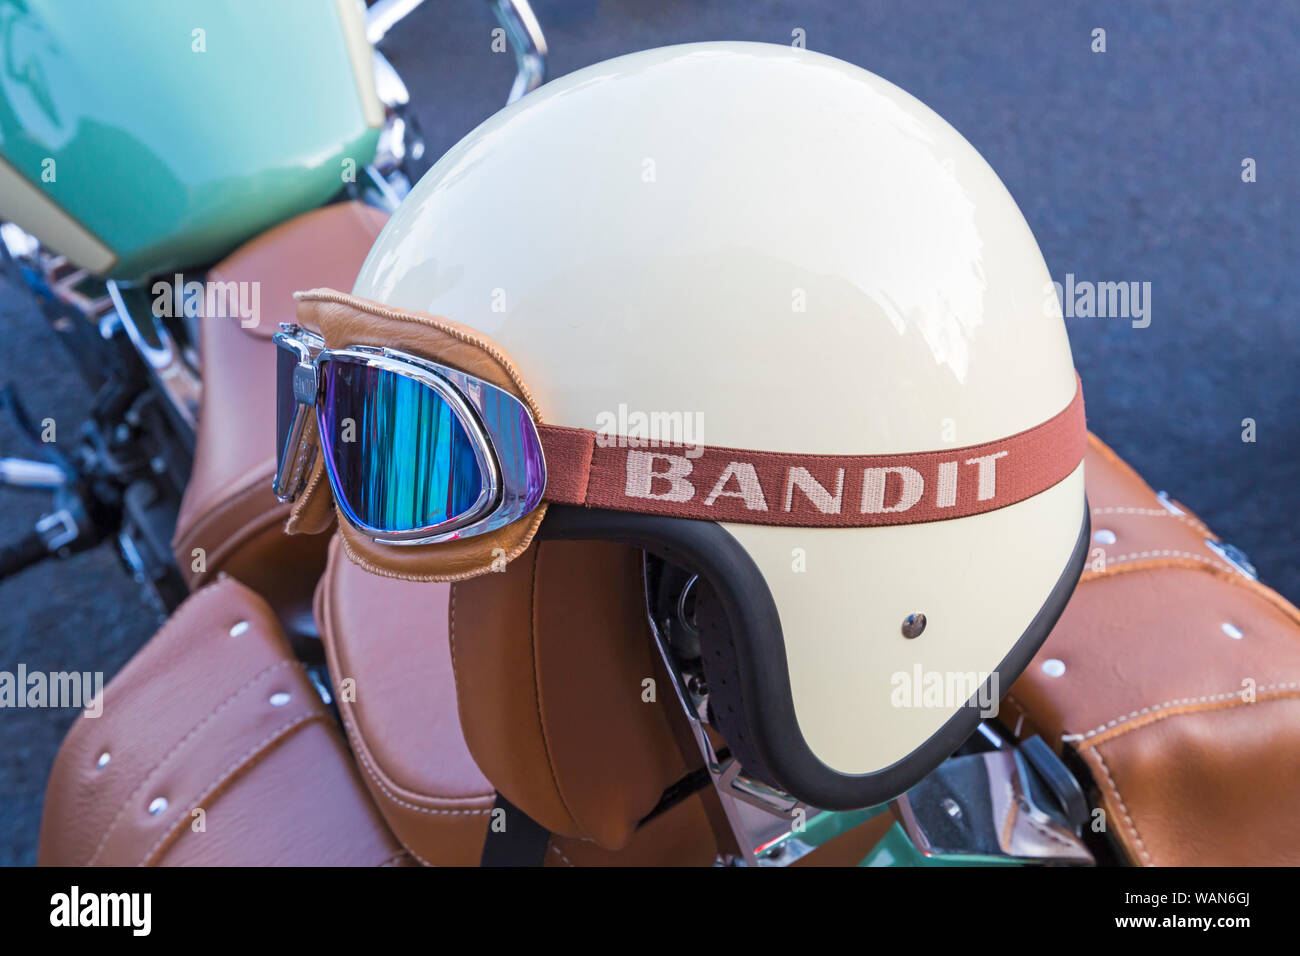 Bandit crash helmet with goggles on bike at bike night on Poole Quay, Poole, Dorset UK in August Stock Photo